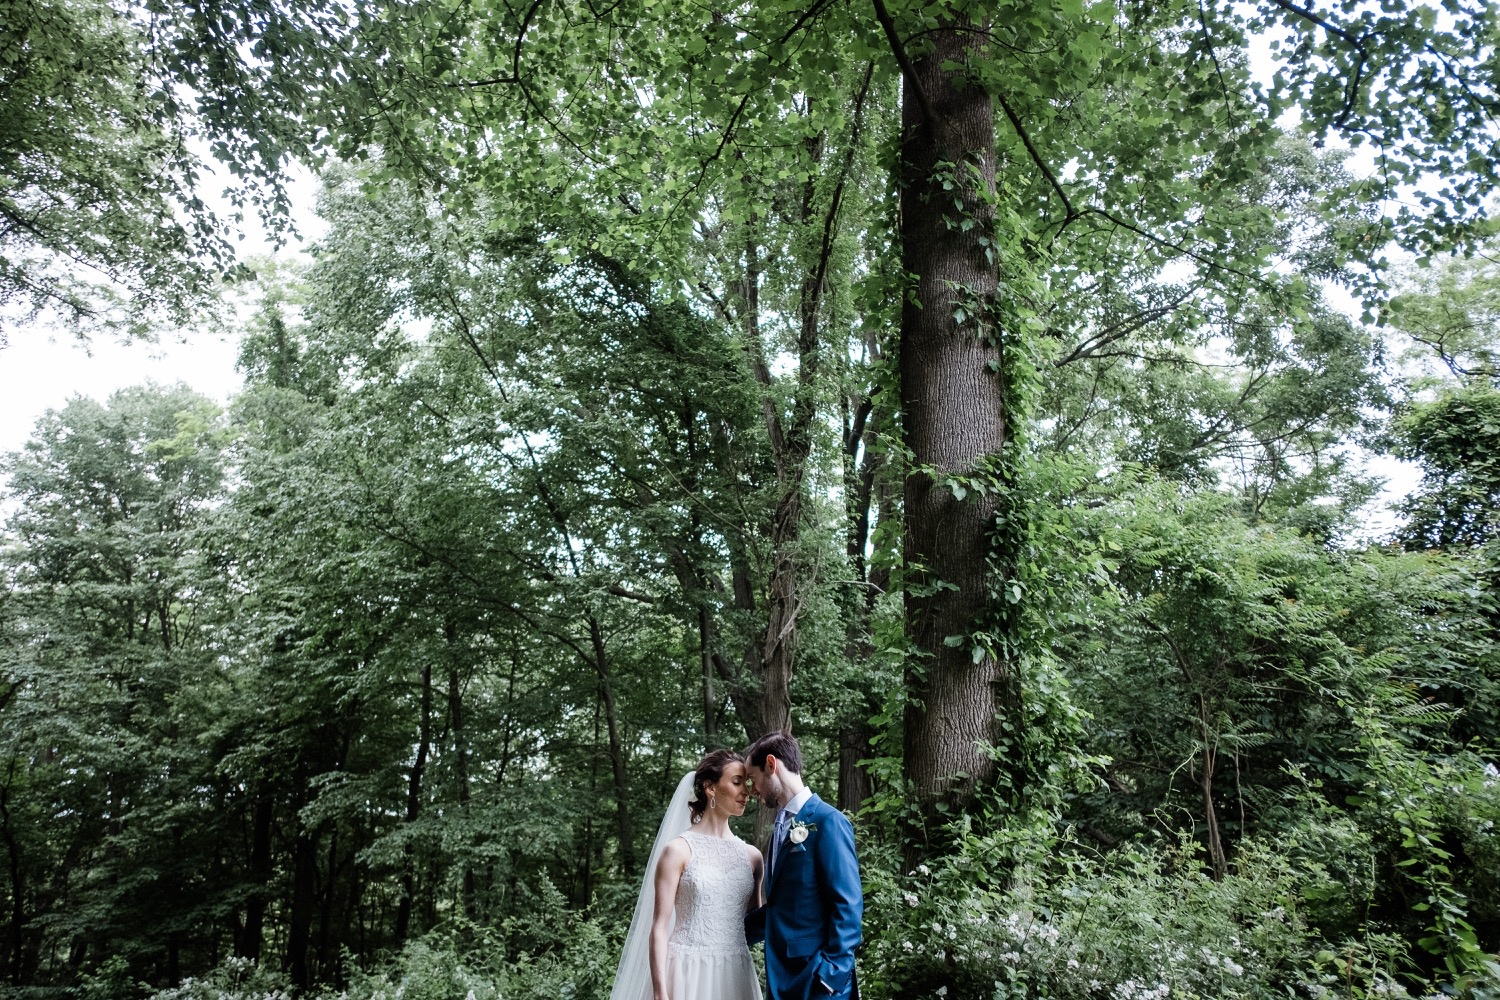 The Garrison Wedding, The Garrison venue, Hudson Valley wedding, hudson valley wedding photographer, catskills wedding photographer, the garrison wedding photos, best catskills wedding photographer, wedding poses, wedding photo inspiration, bride and groom ideas